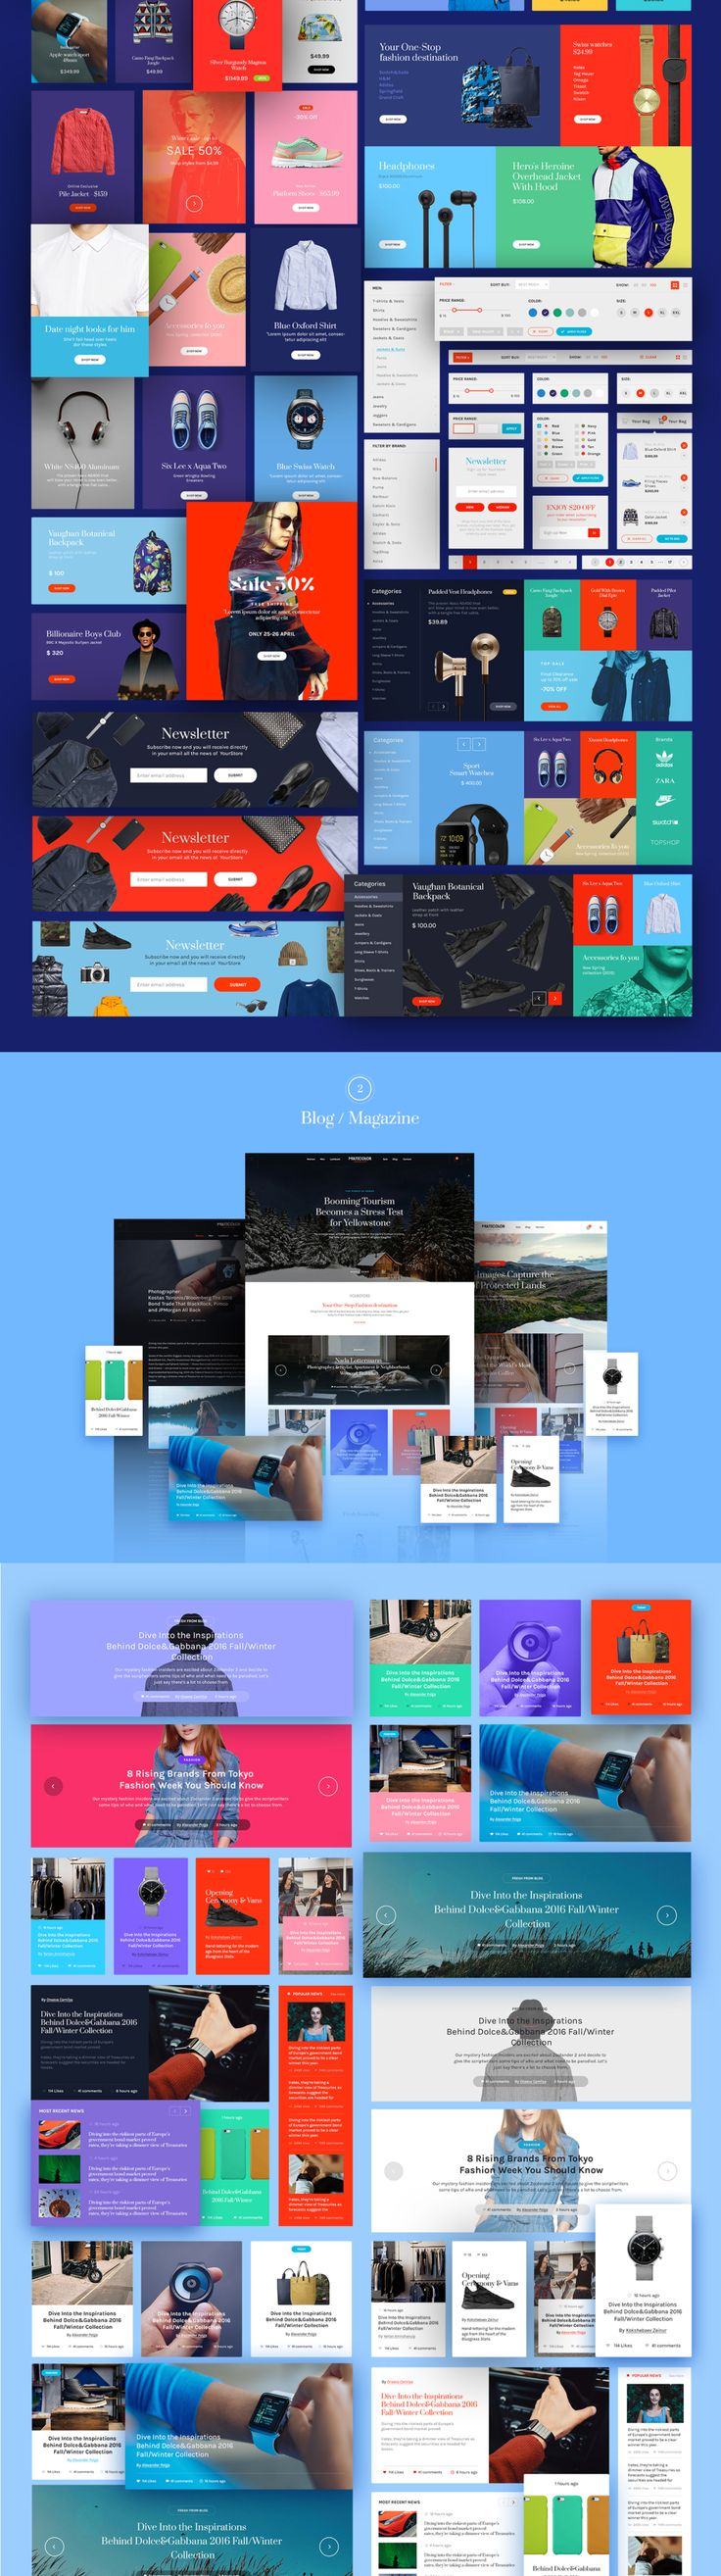 Stylish and bright web based UI Kit, consisting of more than 100 ready to use elements. This UI Kit is useful and diverse, helping you to save time by facilitating great designs and easy prototyping.